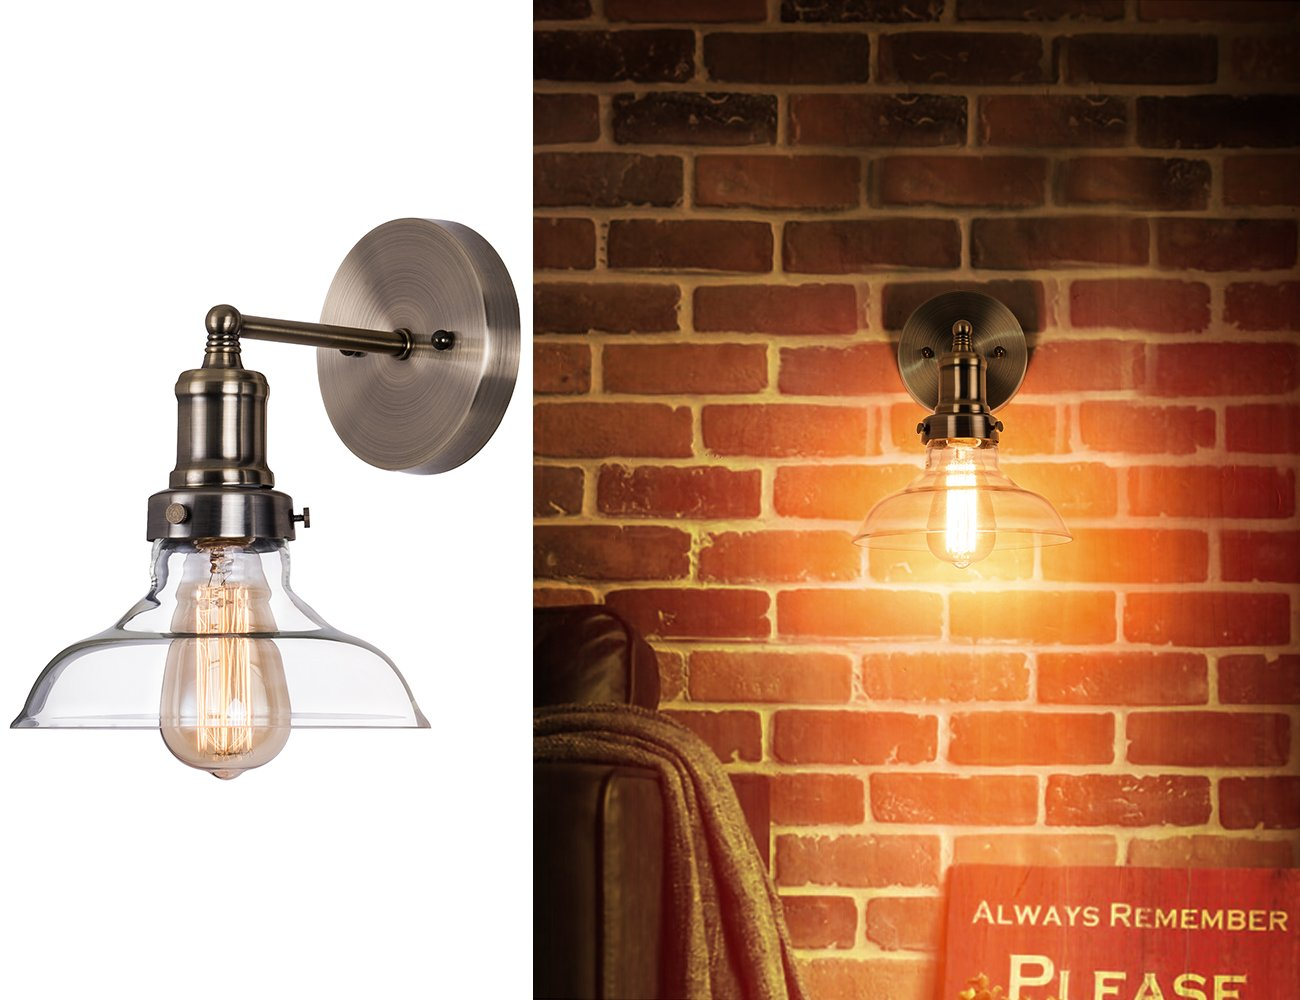 Industrial Clear Glass Wall Sconce Lighting,Antique Brass Nickel Fixture Wall Lamp Light for Bathroom,Hallway,Entry,Bar,Kitchen Sink by Lanros